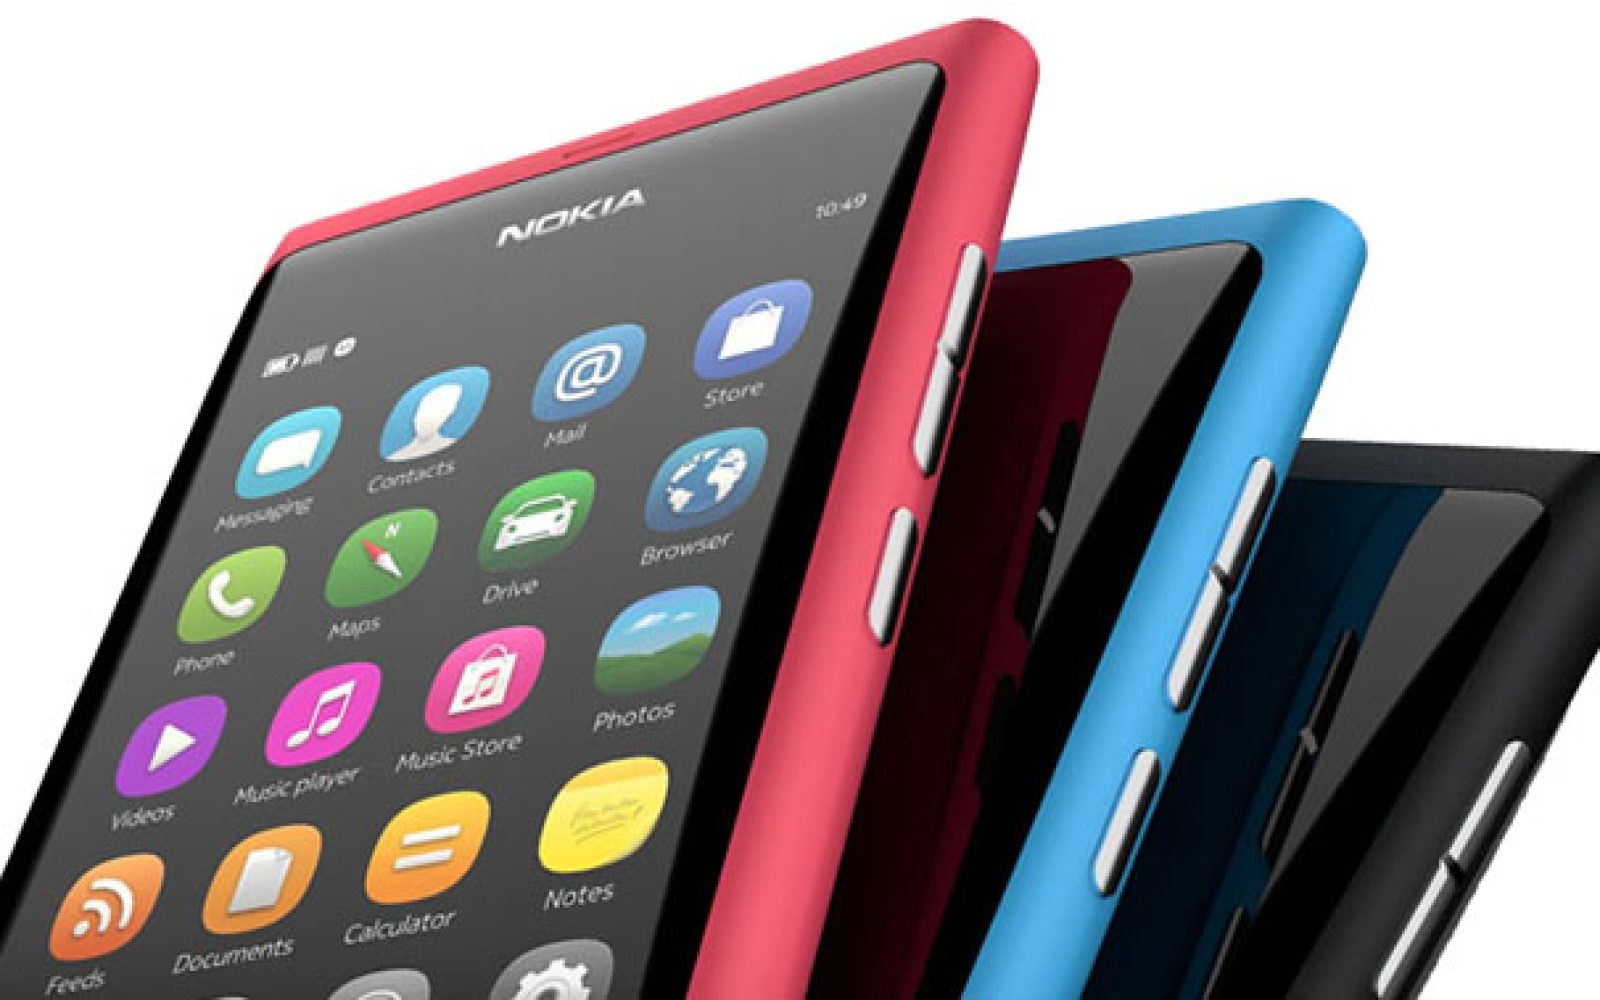 Nokia N9: The best Android smartphone? - 9to5Google